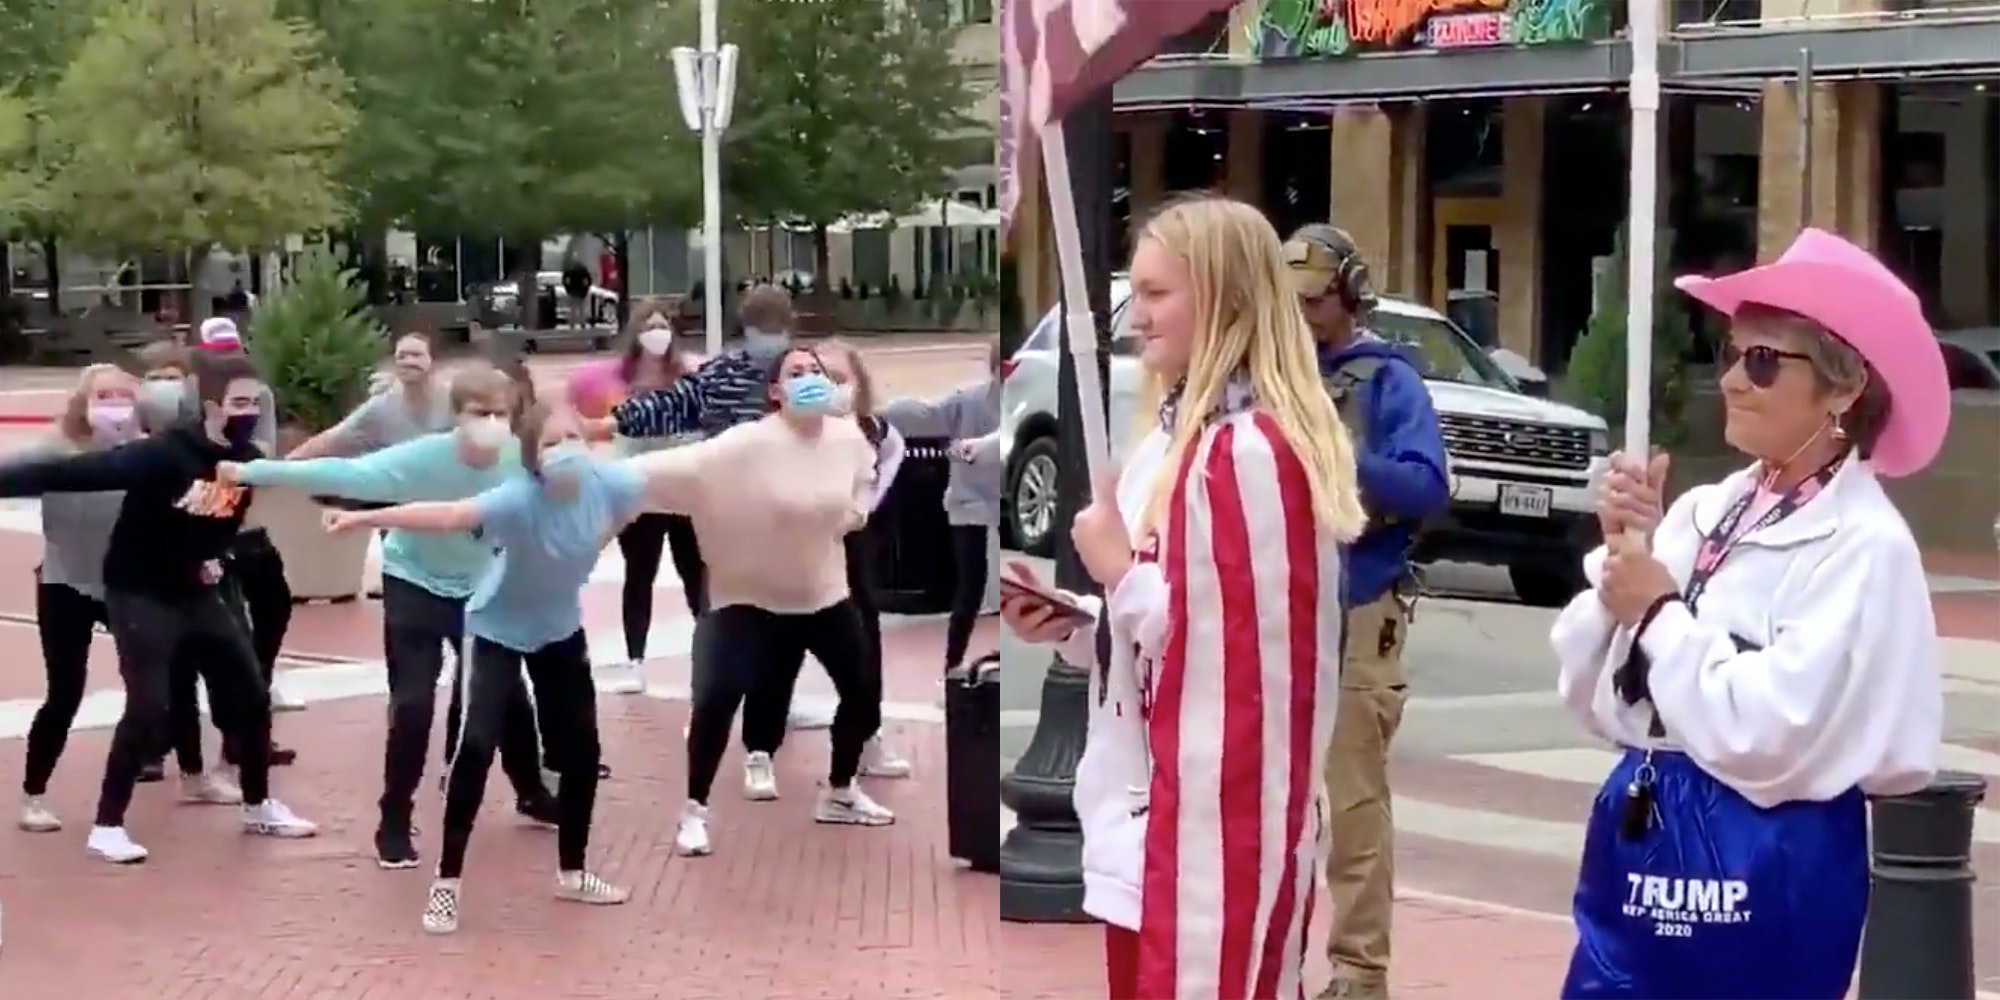 Biden vs. Trump Supporters Dance-Off (of Sorts) Goes Viral